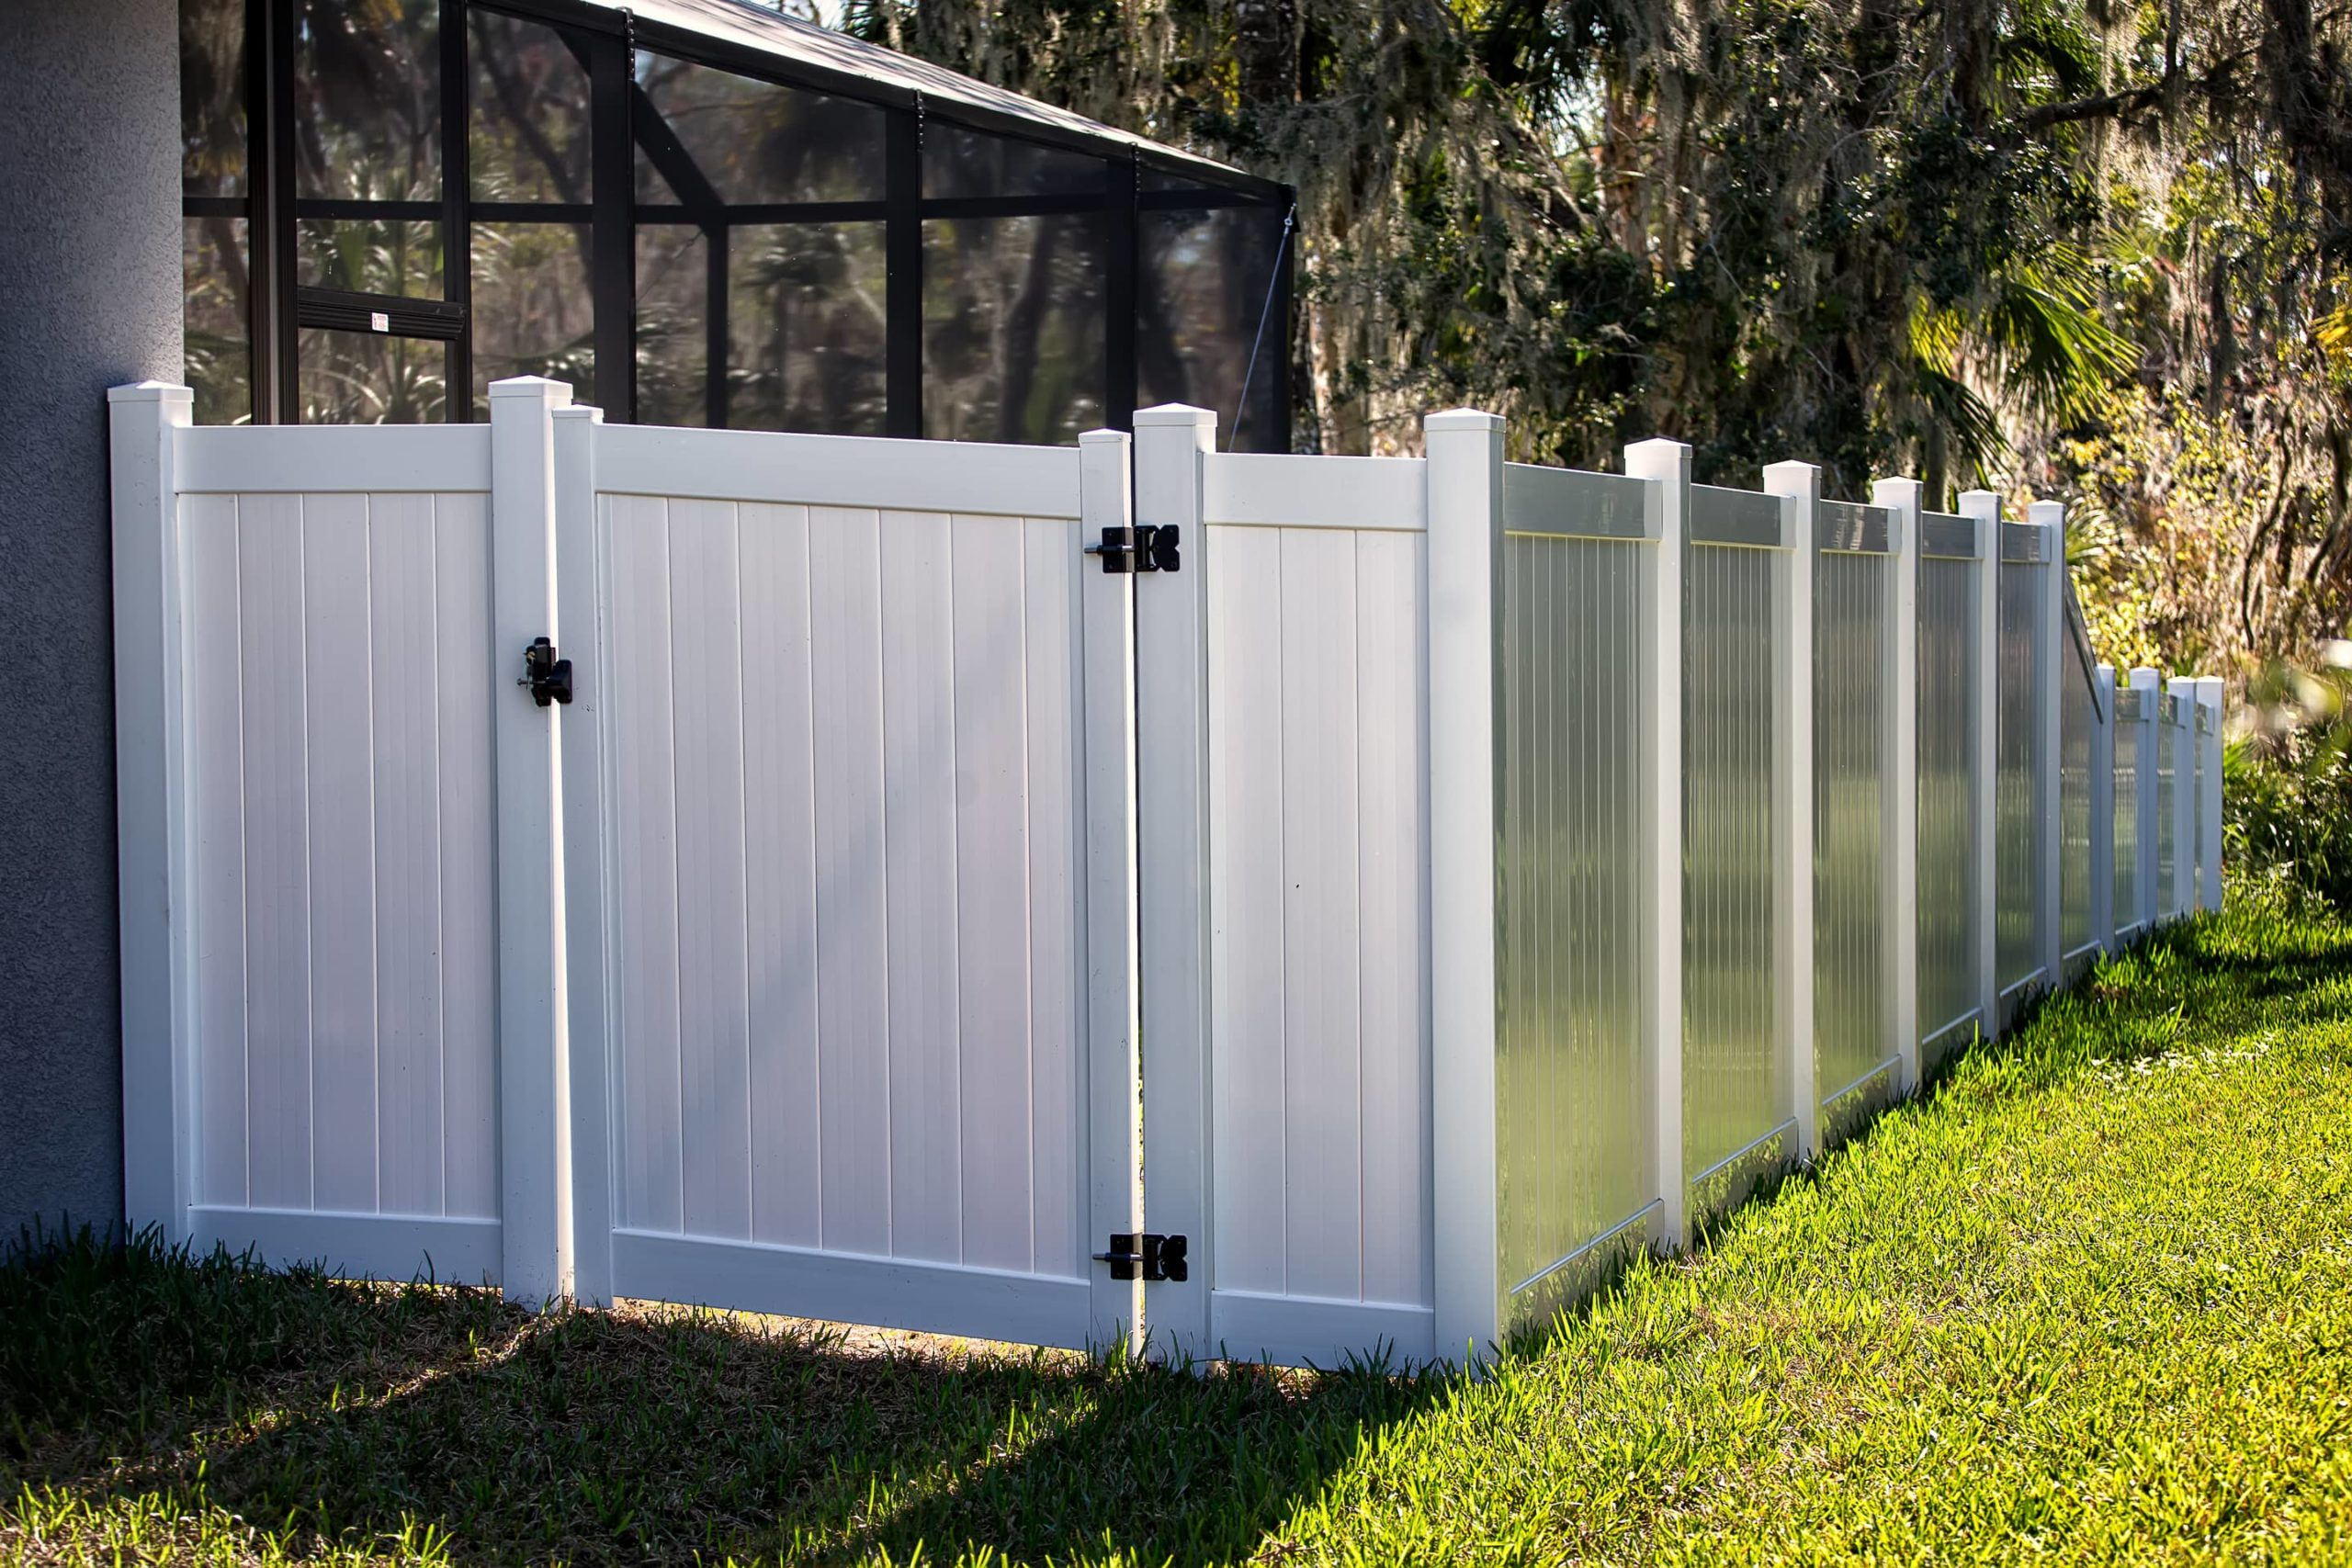 This is an image of a white plastic fence with a gate that opens.